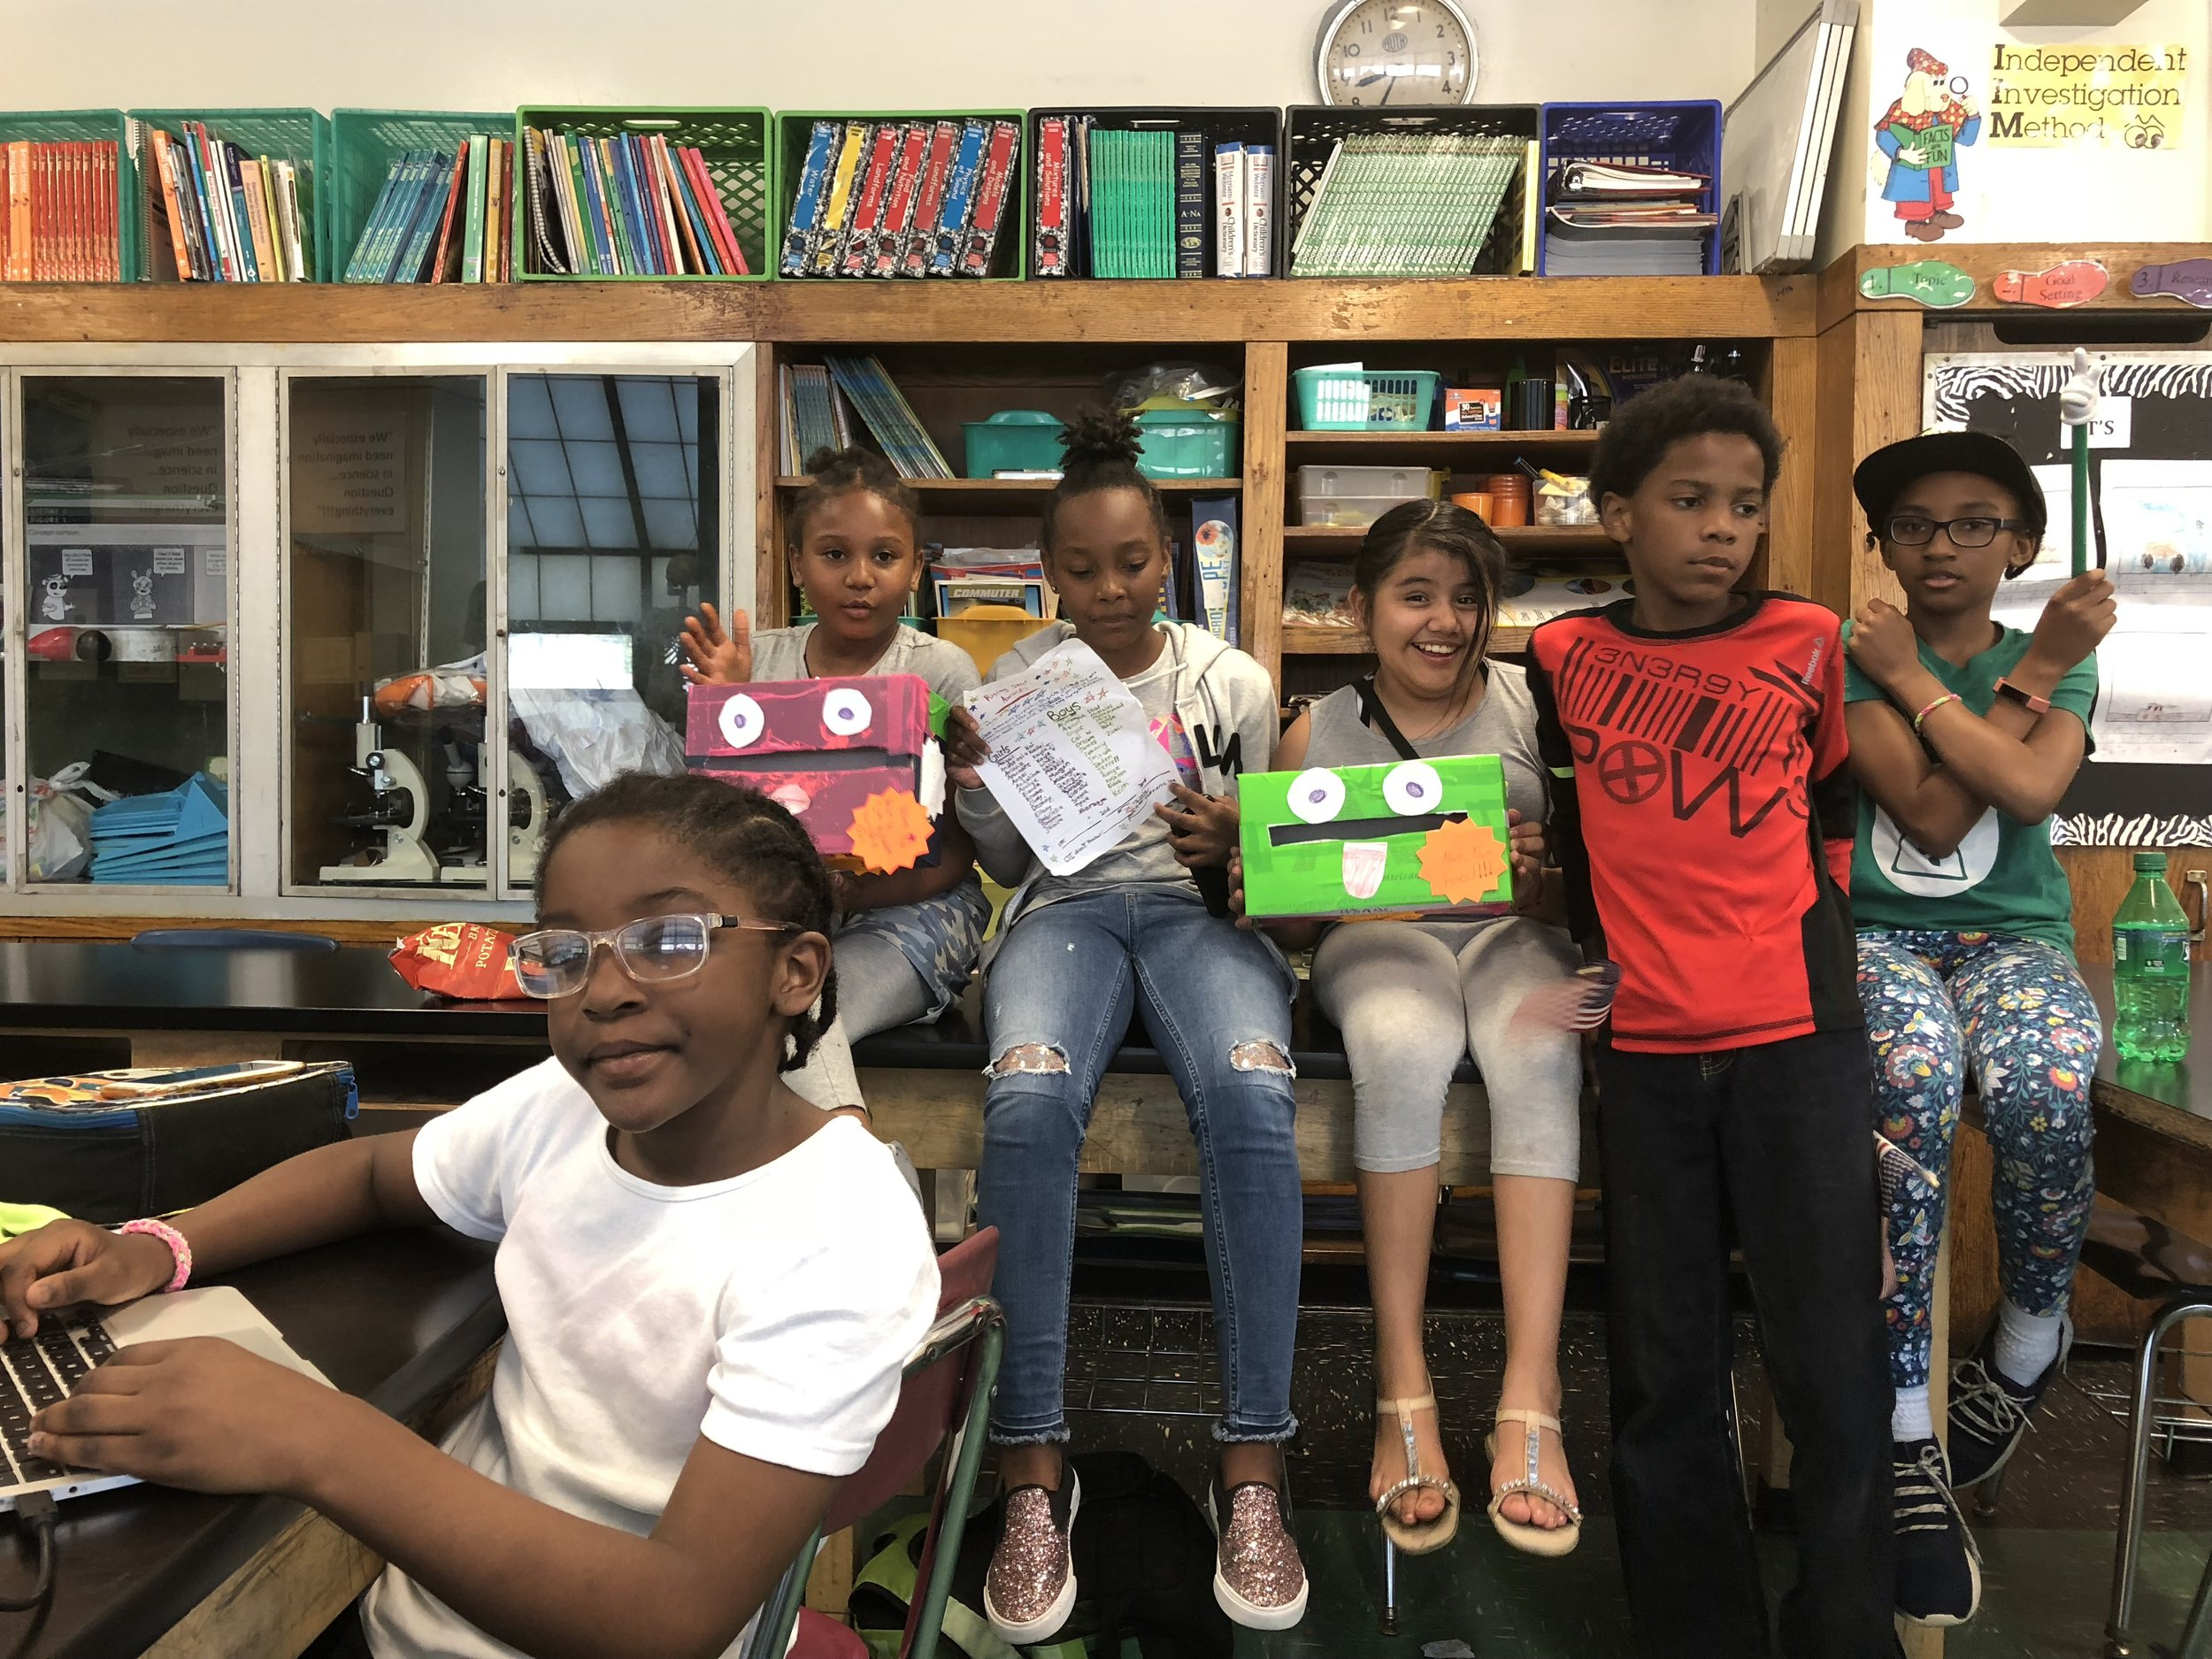 Kid Reporters decided to hold an election for the Rising Star Award, making a ballot, ballot boxes and posters to broadcast that all 4th and 5th graders would vote. Afterwards they wrote about the process and the outcome. Most award winners are determined by adults. The kids wanted to decide among their peers who deserved the Rising Star Awards because they see their peers in a different way than adults do.